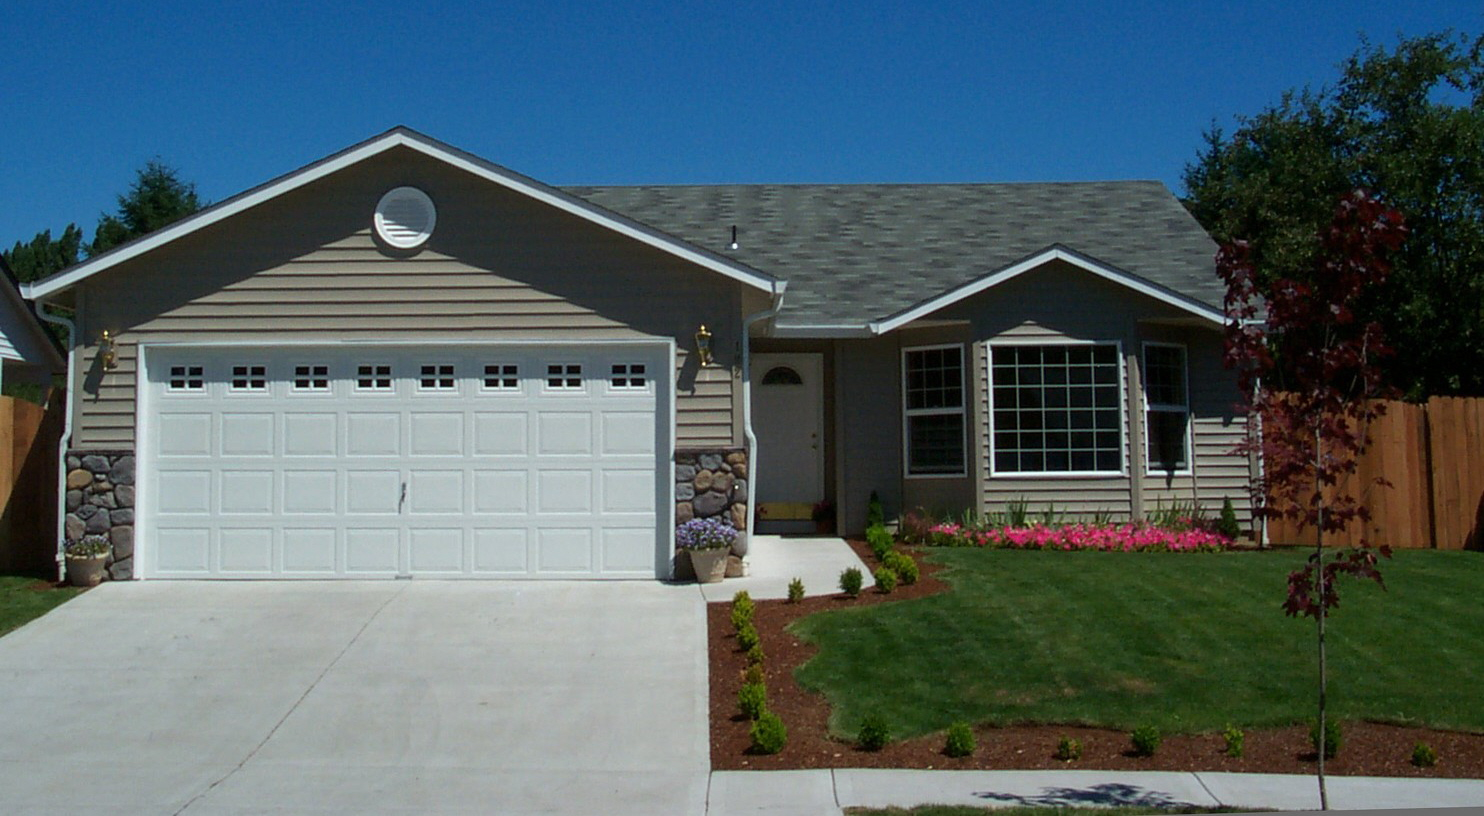 Germain insurance new hampshire home insurance experts for Homes with big garages for sale